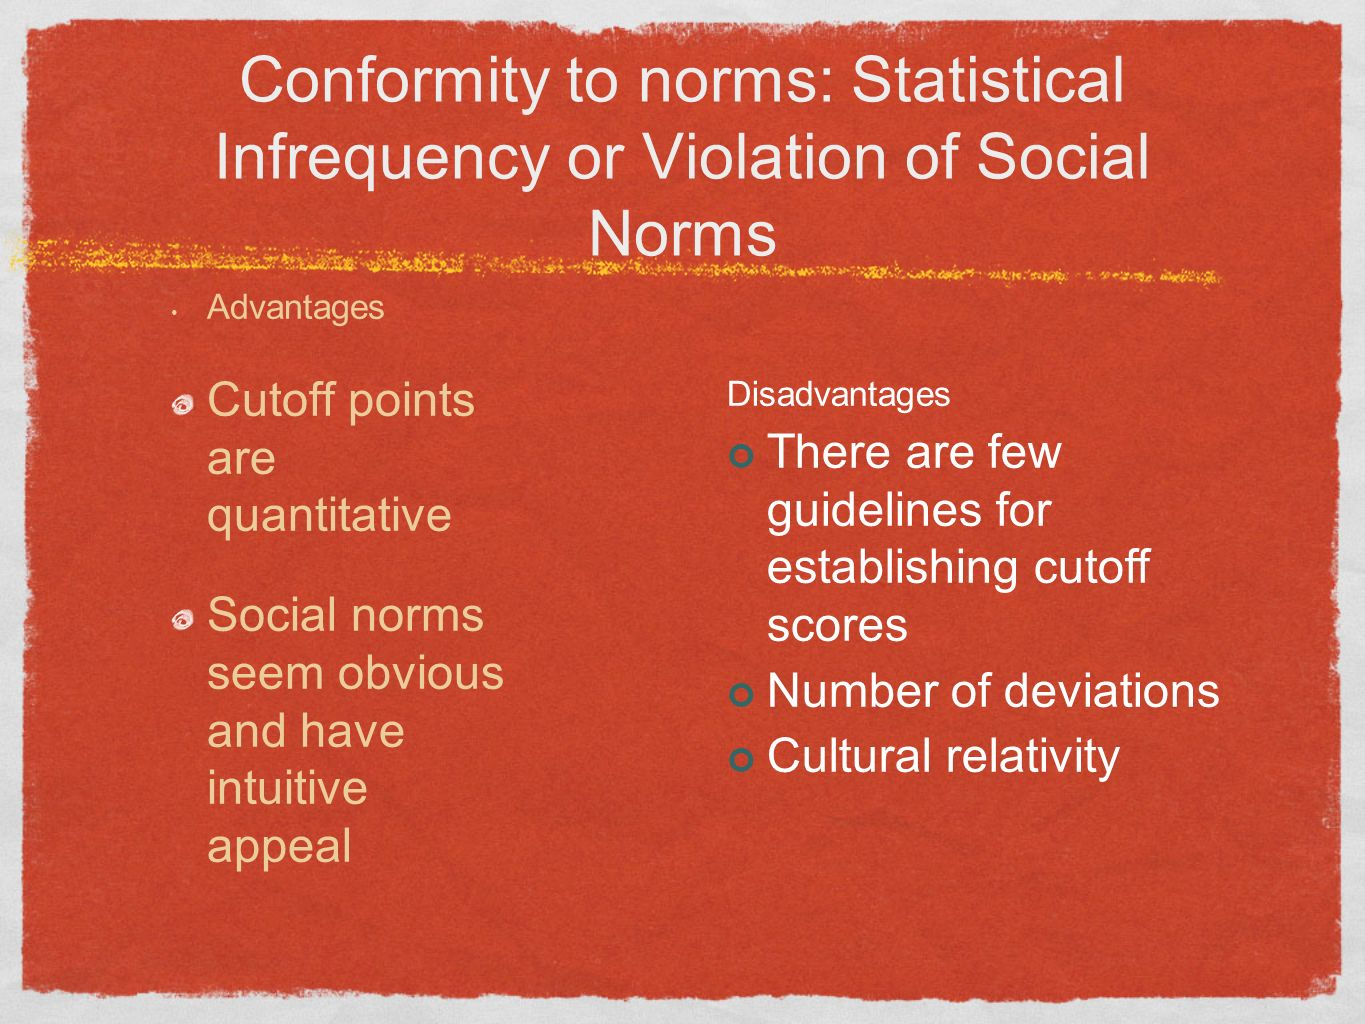 Conformity to norms: Statistical Infrequency or Violation of Social Norms Advantages Cutoff points are quantitative Social norms seem obvious and have